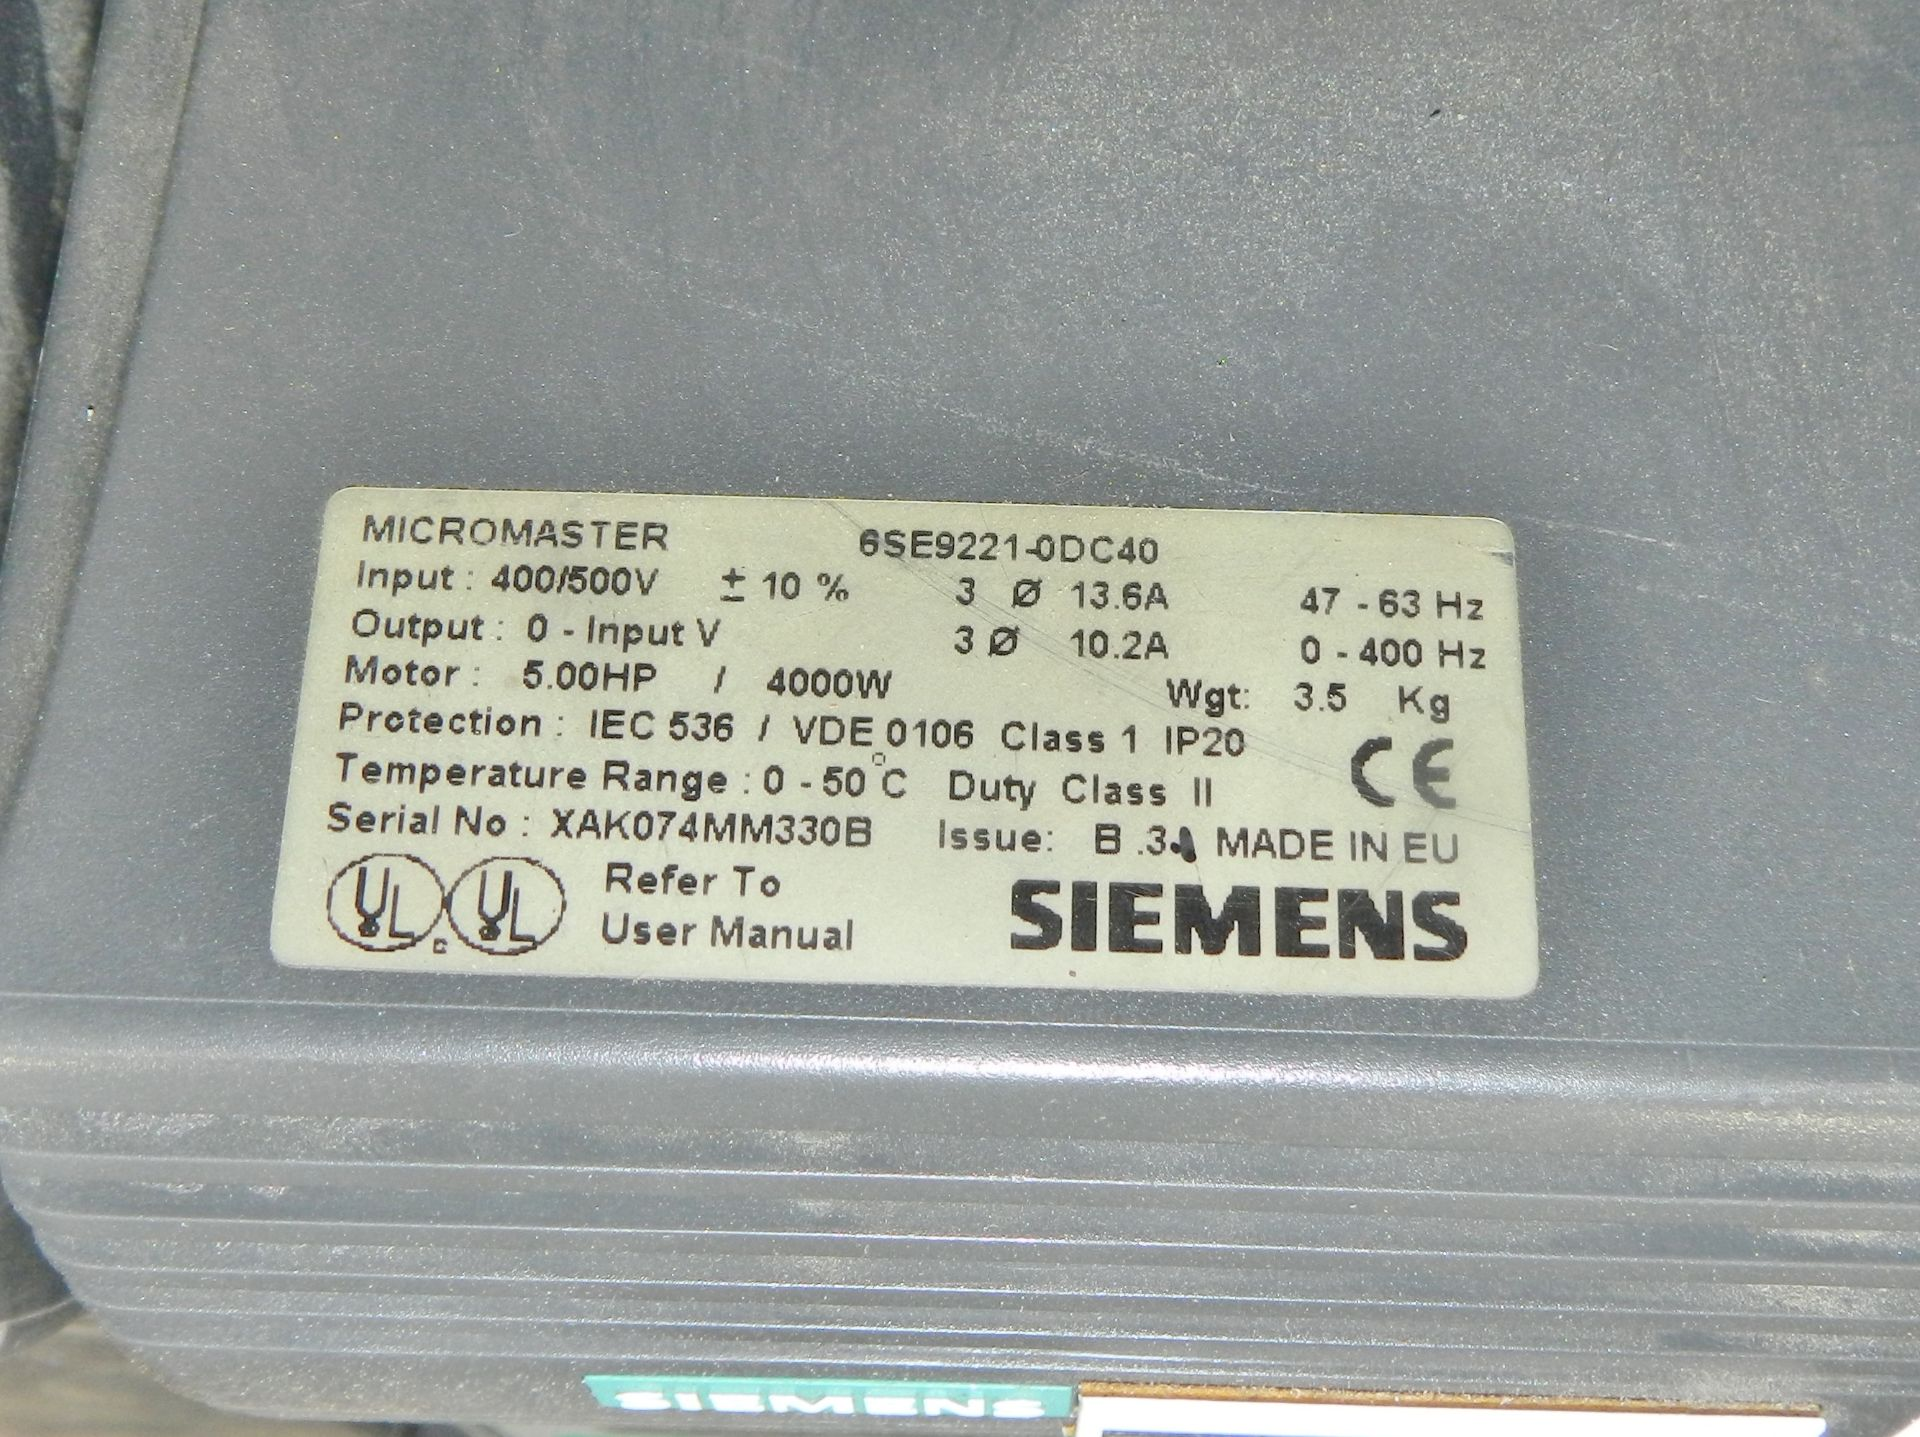 Lot 3 - Lot of 8 SIEMENS 6SE9221-0DC40 5HP 4KW 380-500VAC AC DRIVE